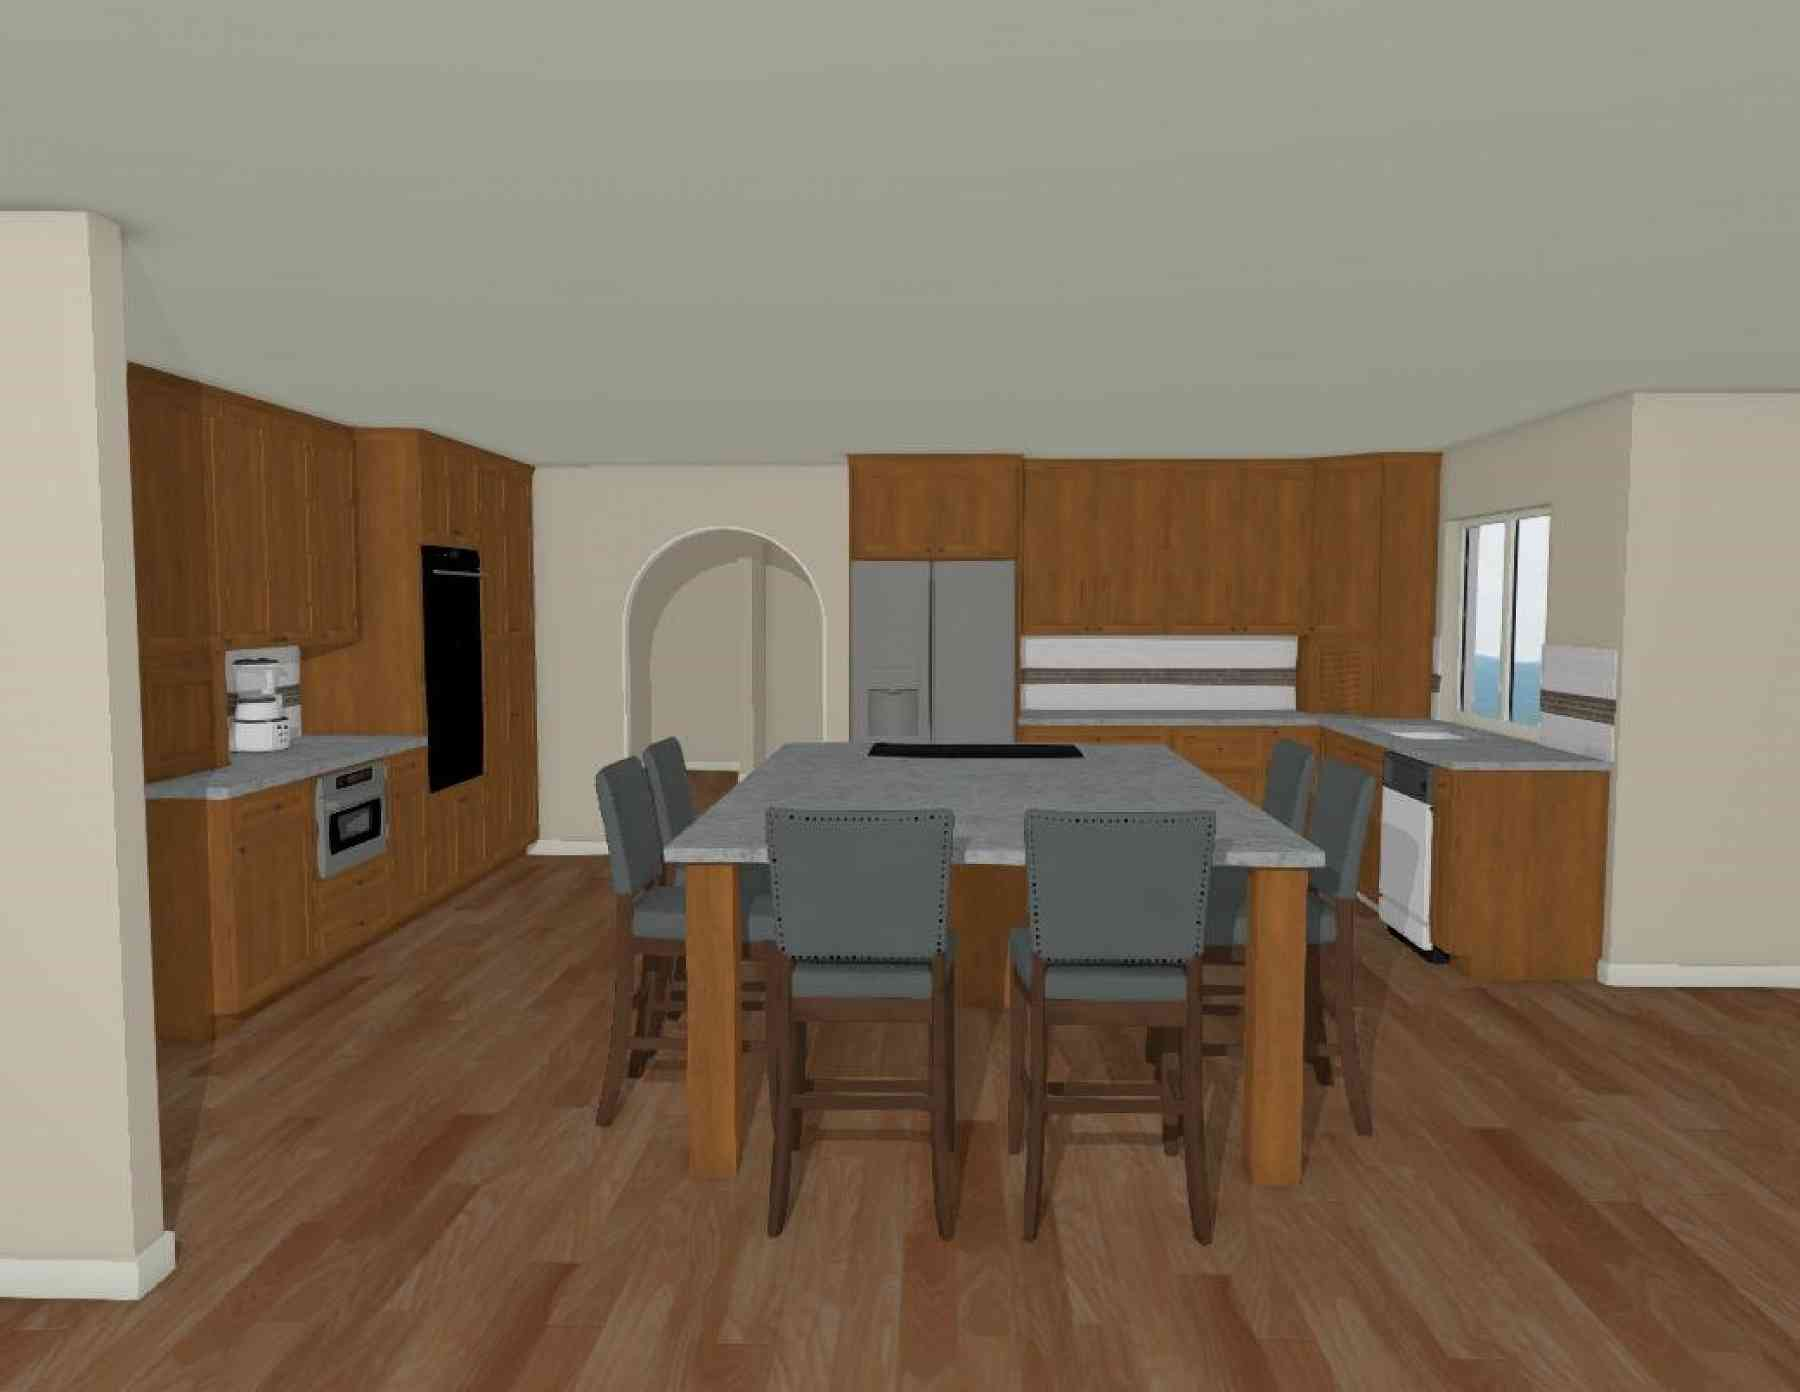 The Kitchen Rendering